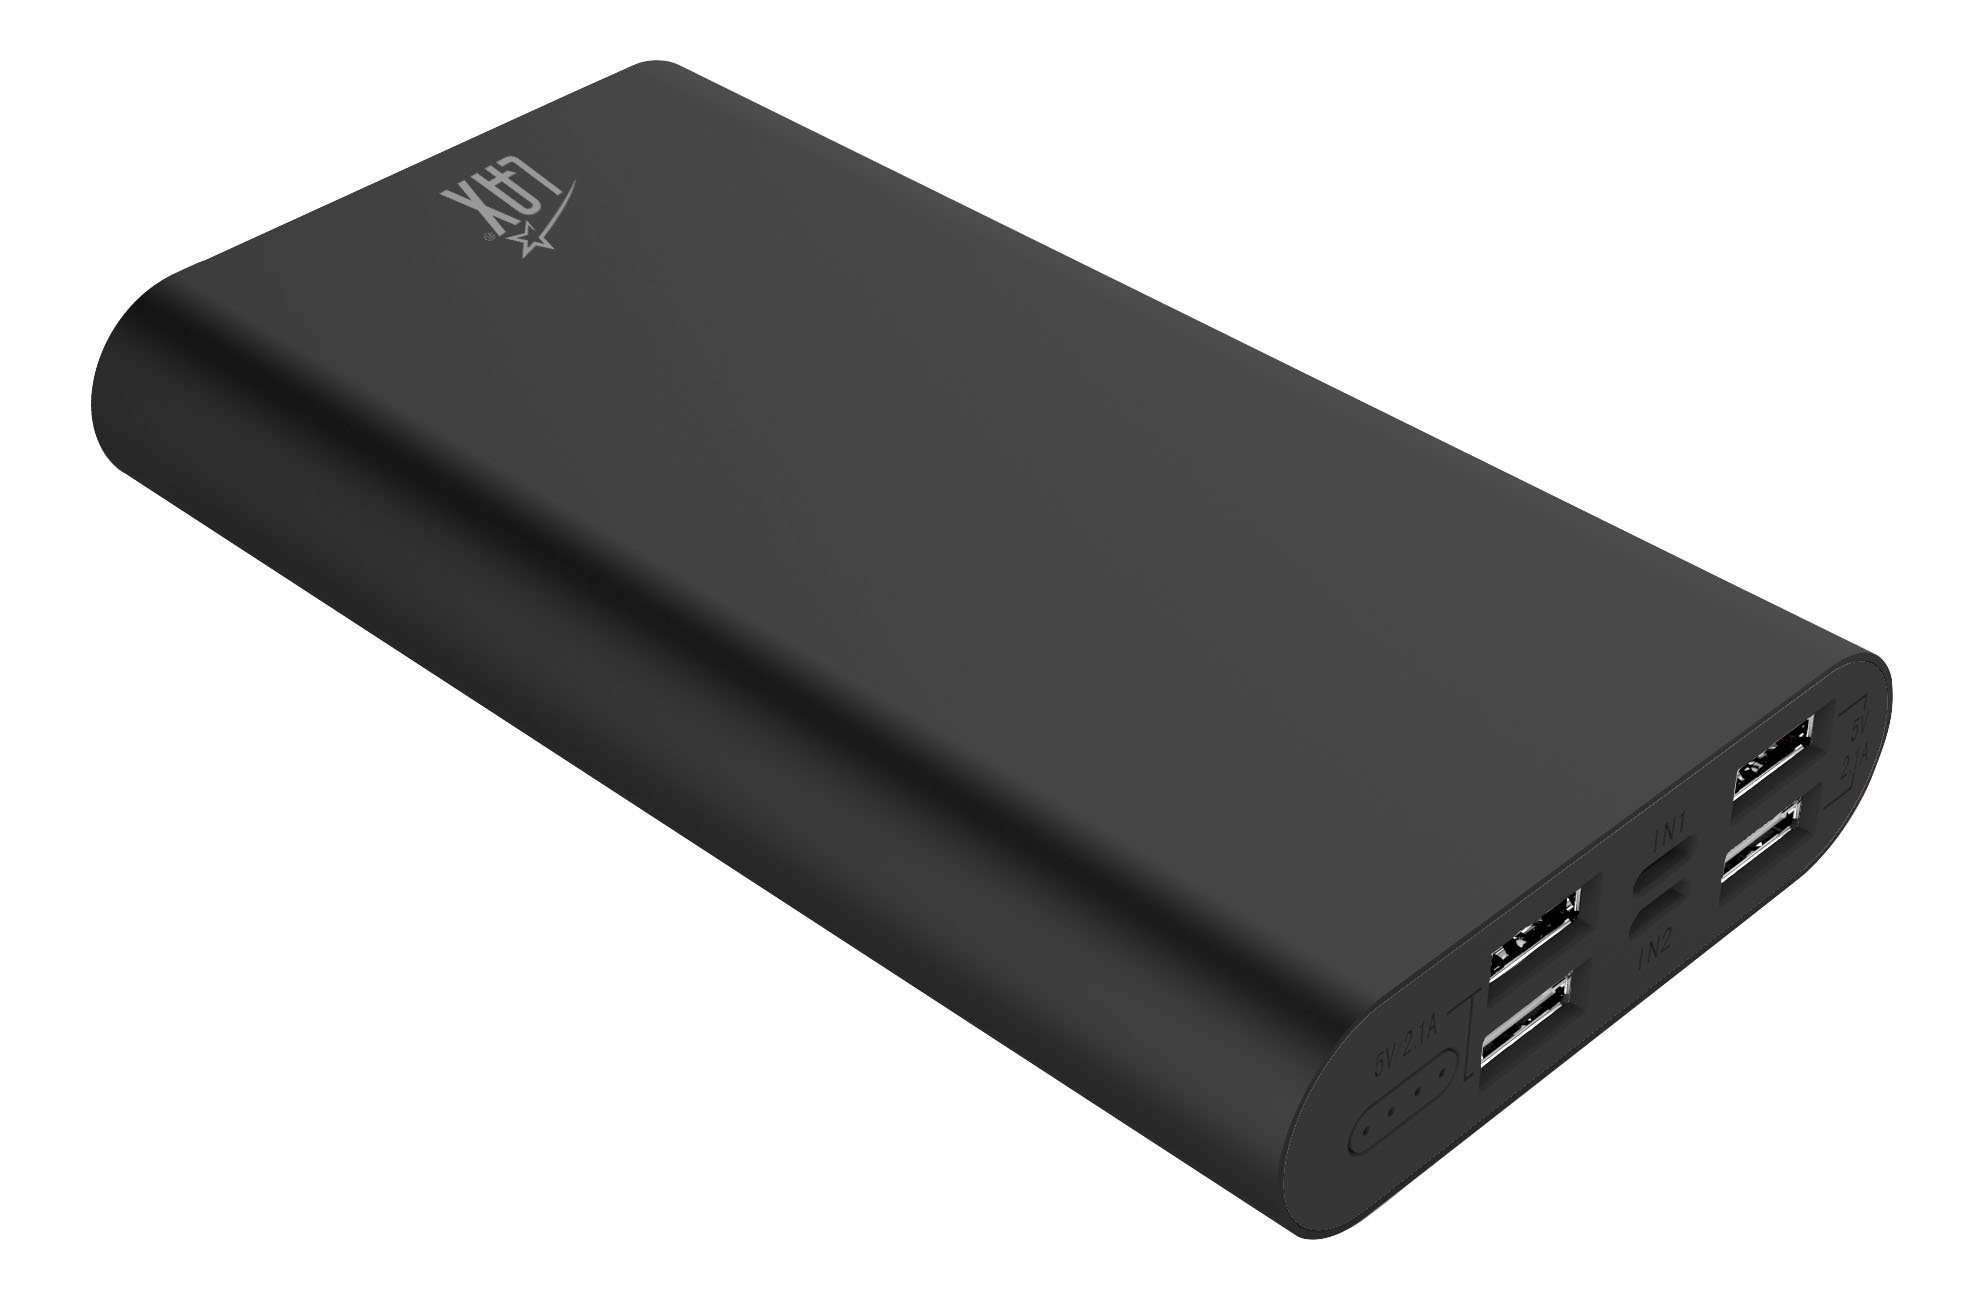 LAX Pro 16800 Portable Charger Battery Backup, 16800mAh External Battery with 4 High Speed Charging 2.1A USB Ports for iPhone, iPad, Samsung Galaxy, Android and other Smart Devices (Black)